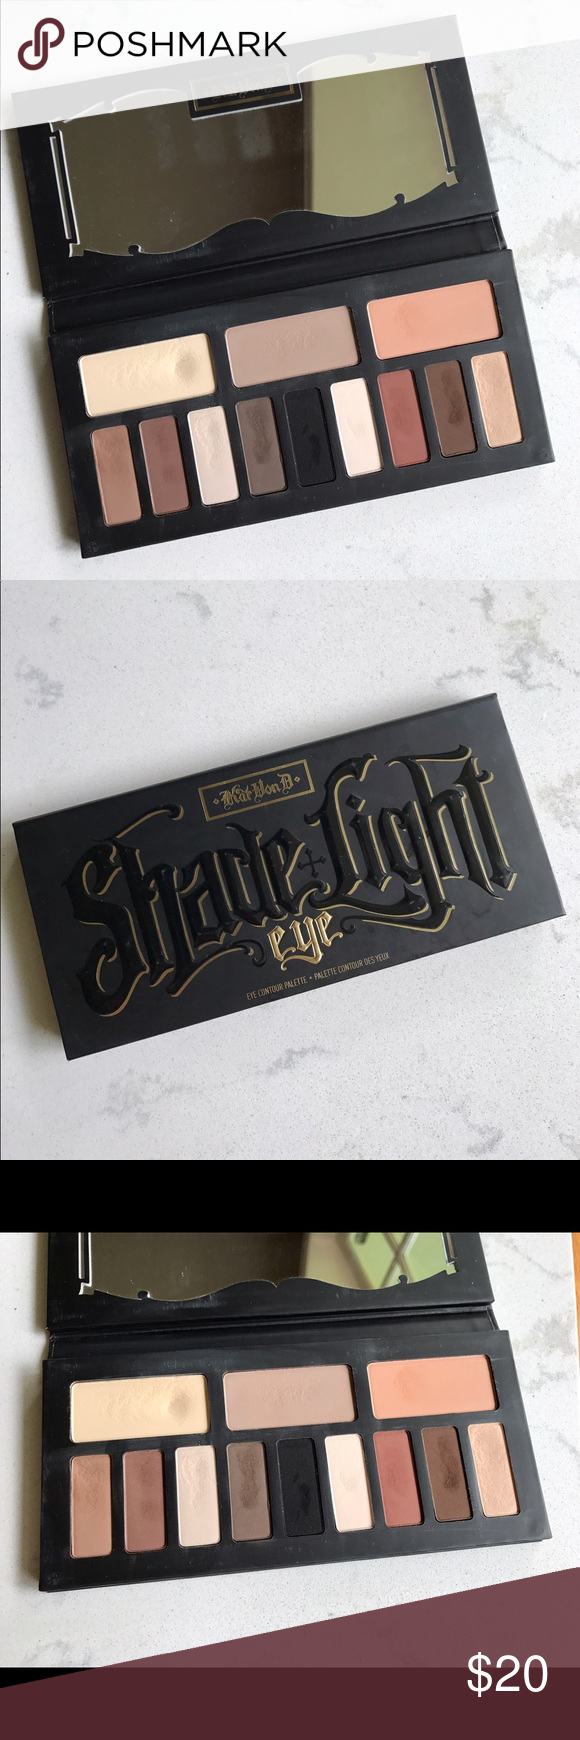 Kat Von D Shade & Light Eye Palette This is the older version of this very versatile palette. I believe the only difference is in the case material (this is the cardboard not the hard case). This palette has been used, as the pictures show, but it's got a lot of use left in it! Kat Von D Makeup Eyeshadow